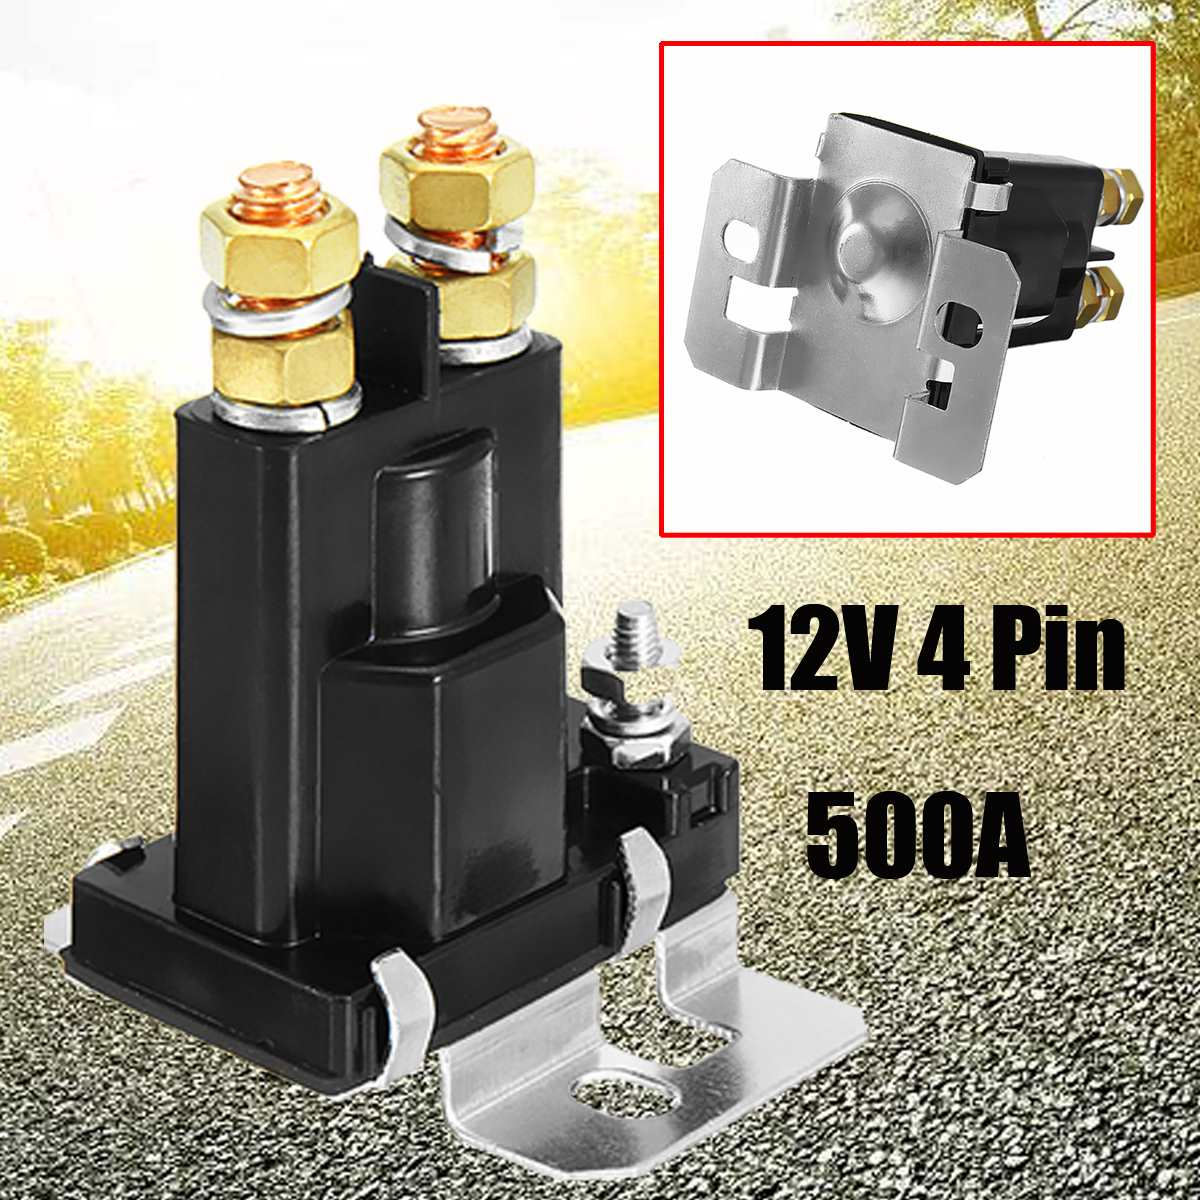 New High Current 500A Amp Relay DC 12V 24V 4 Pin Continues Working Auto Power Switch On/Off Control For Car Motors Drives 12v 24v 30 40 a amp 4 pin 4p wire 5p 5 pin automotive auto harness car relay switch socket